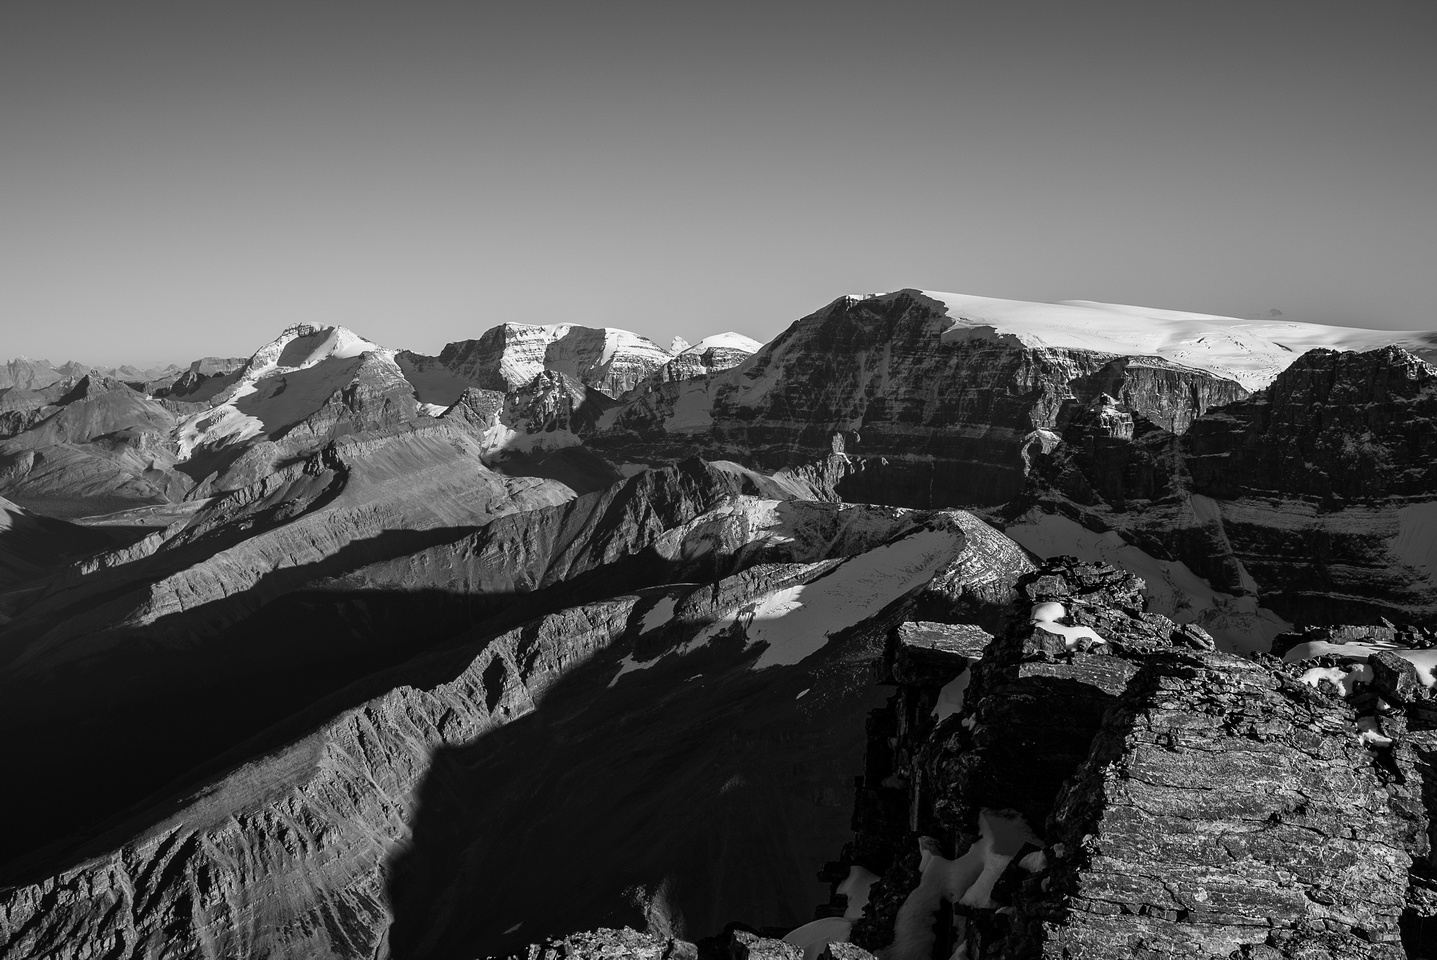 Looking towards the Columbia Icefields, L to R, Athabasca, Andromeda and Kitchener.